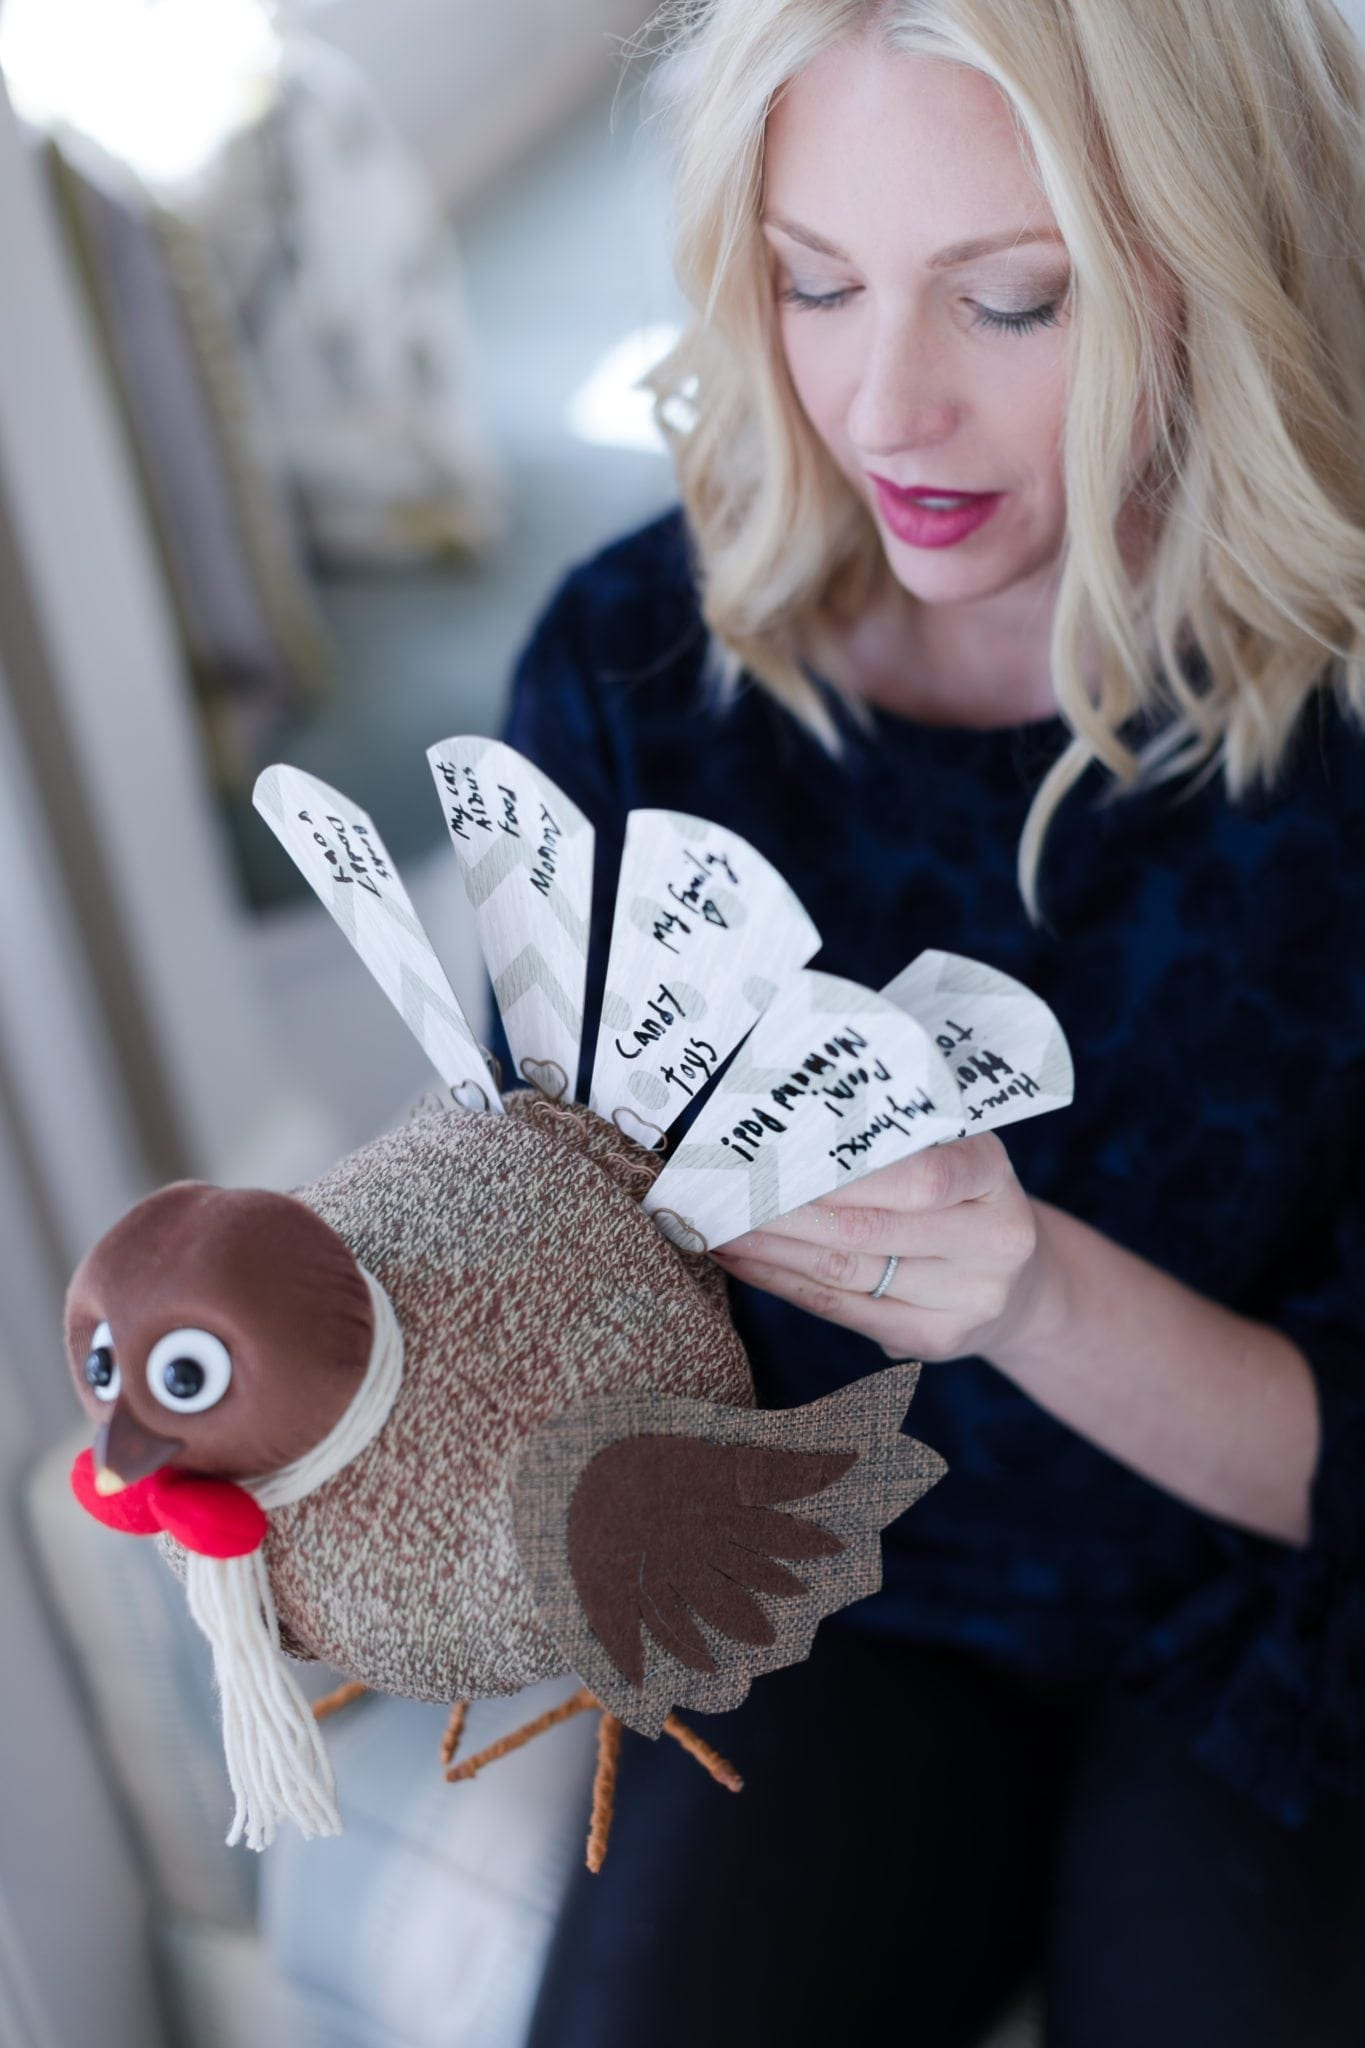 Craft ideas for Thanksgiving with kids. Fun things to do with kids on Thanksgiving.